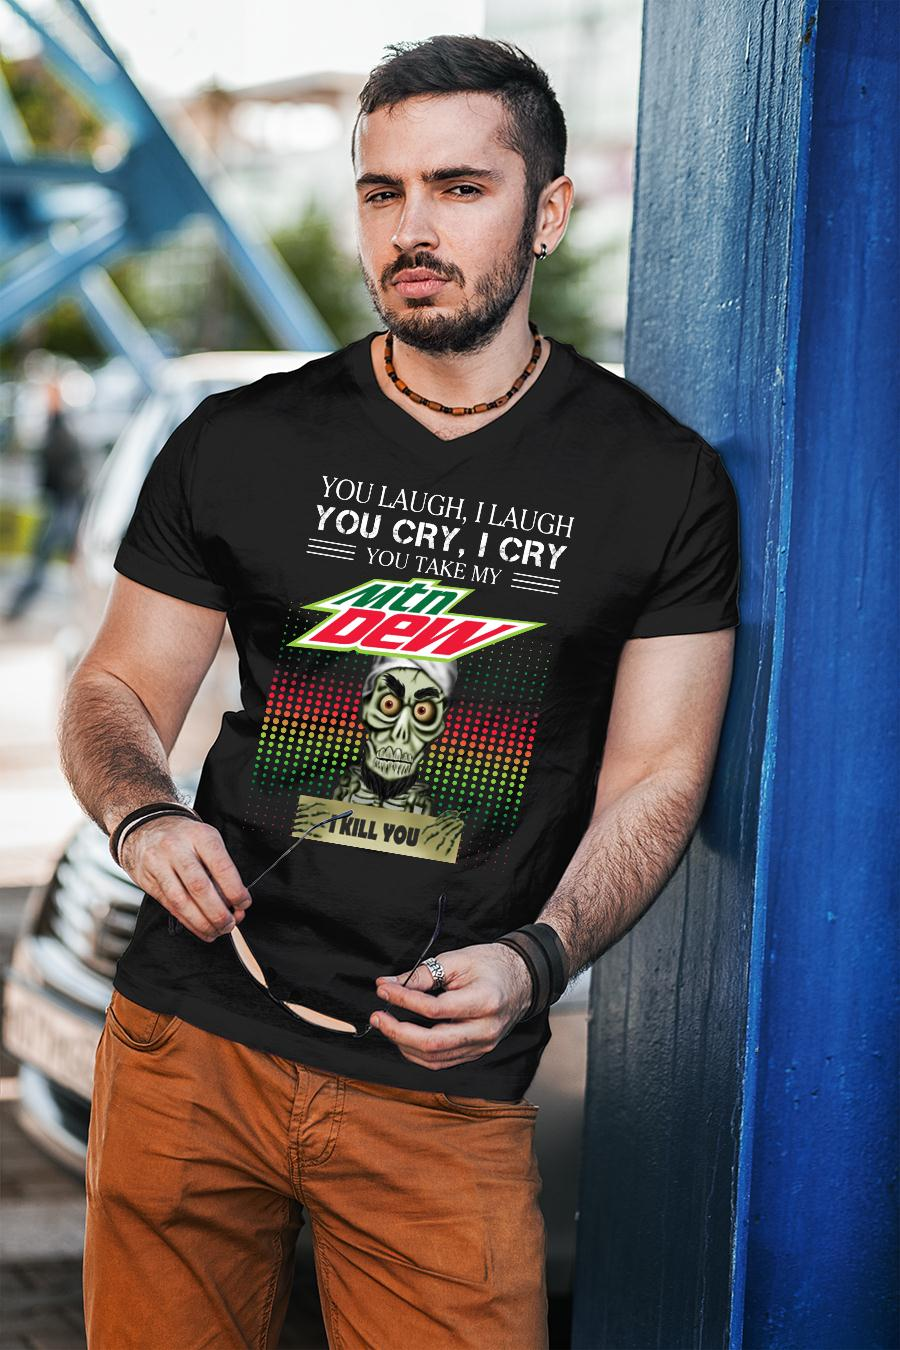 You laugh I laugh you cry I cry you take my Mountain Dew I kill you shirt Cotton Shirt unisex